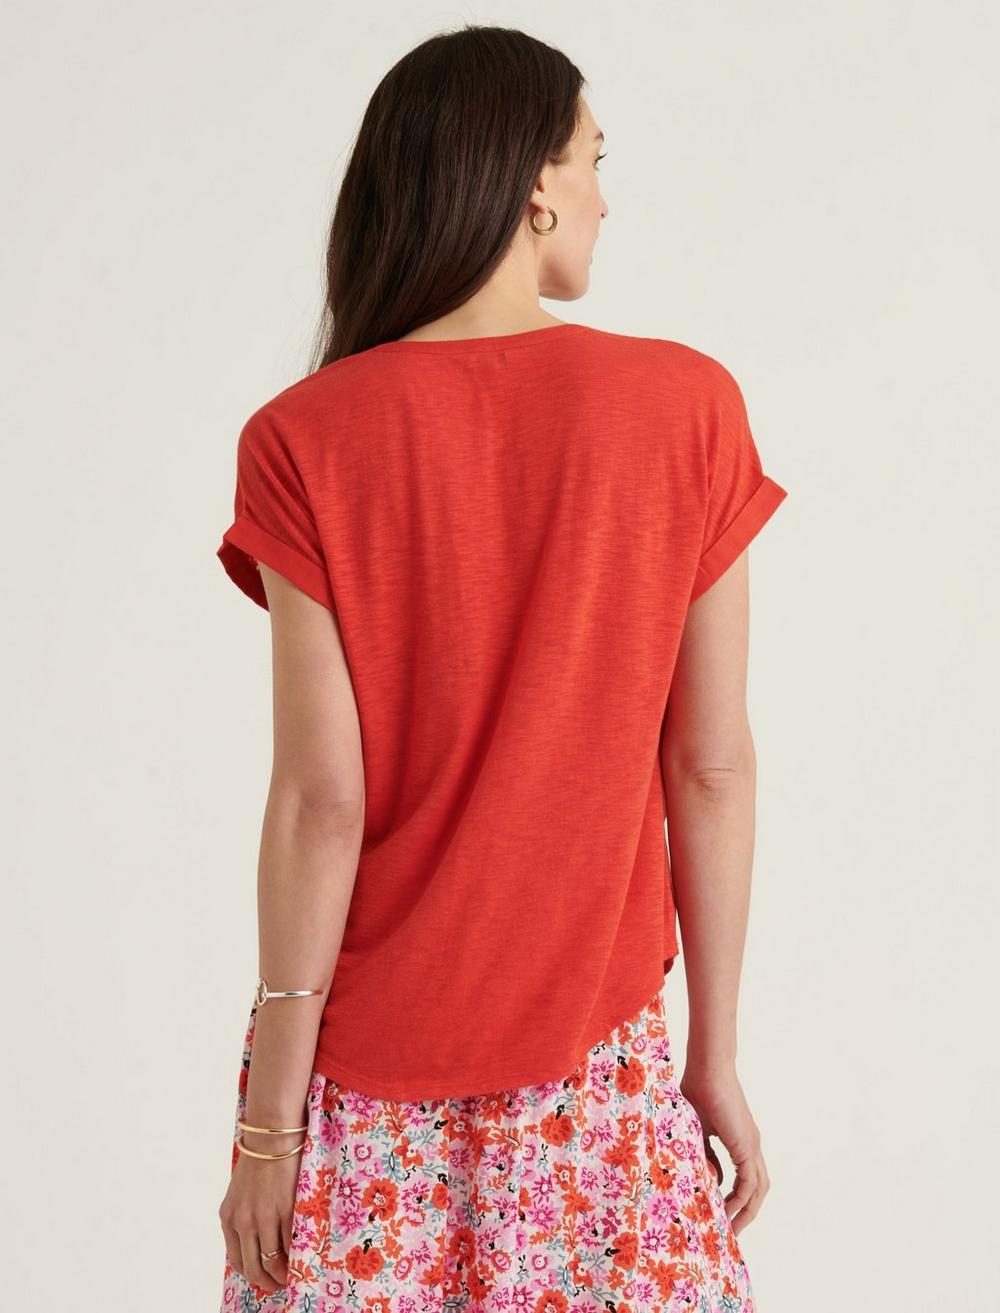 KNIT TOP, image 4